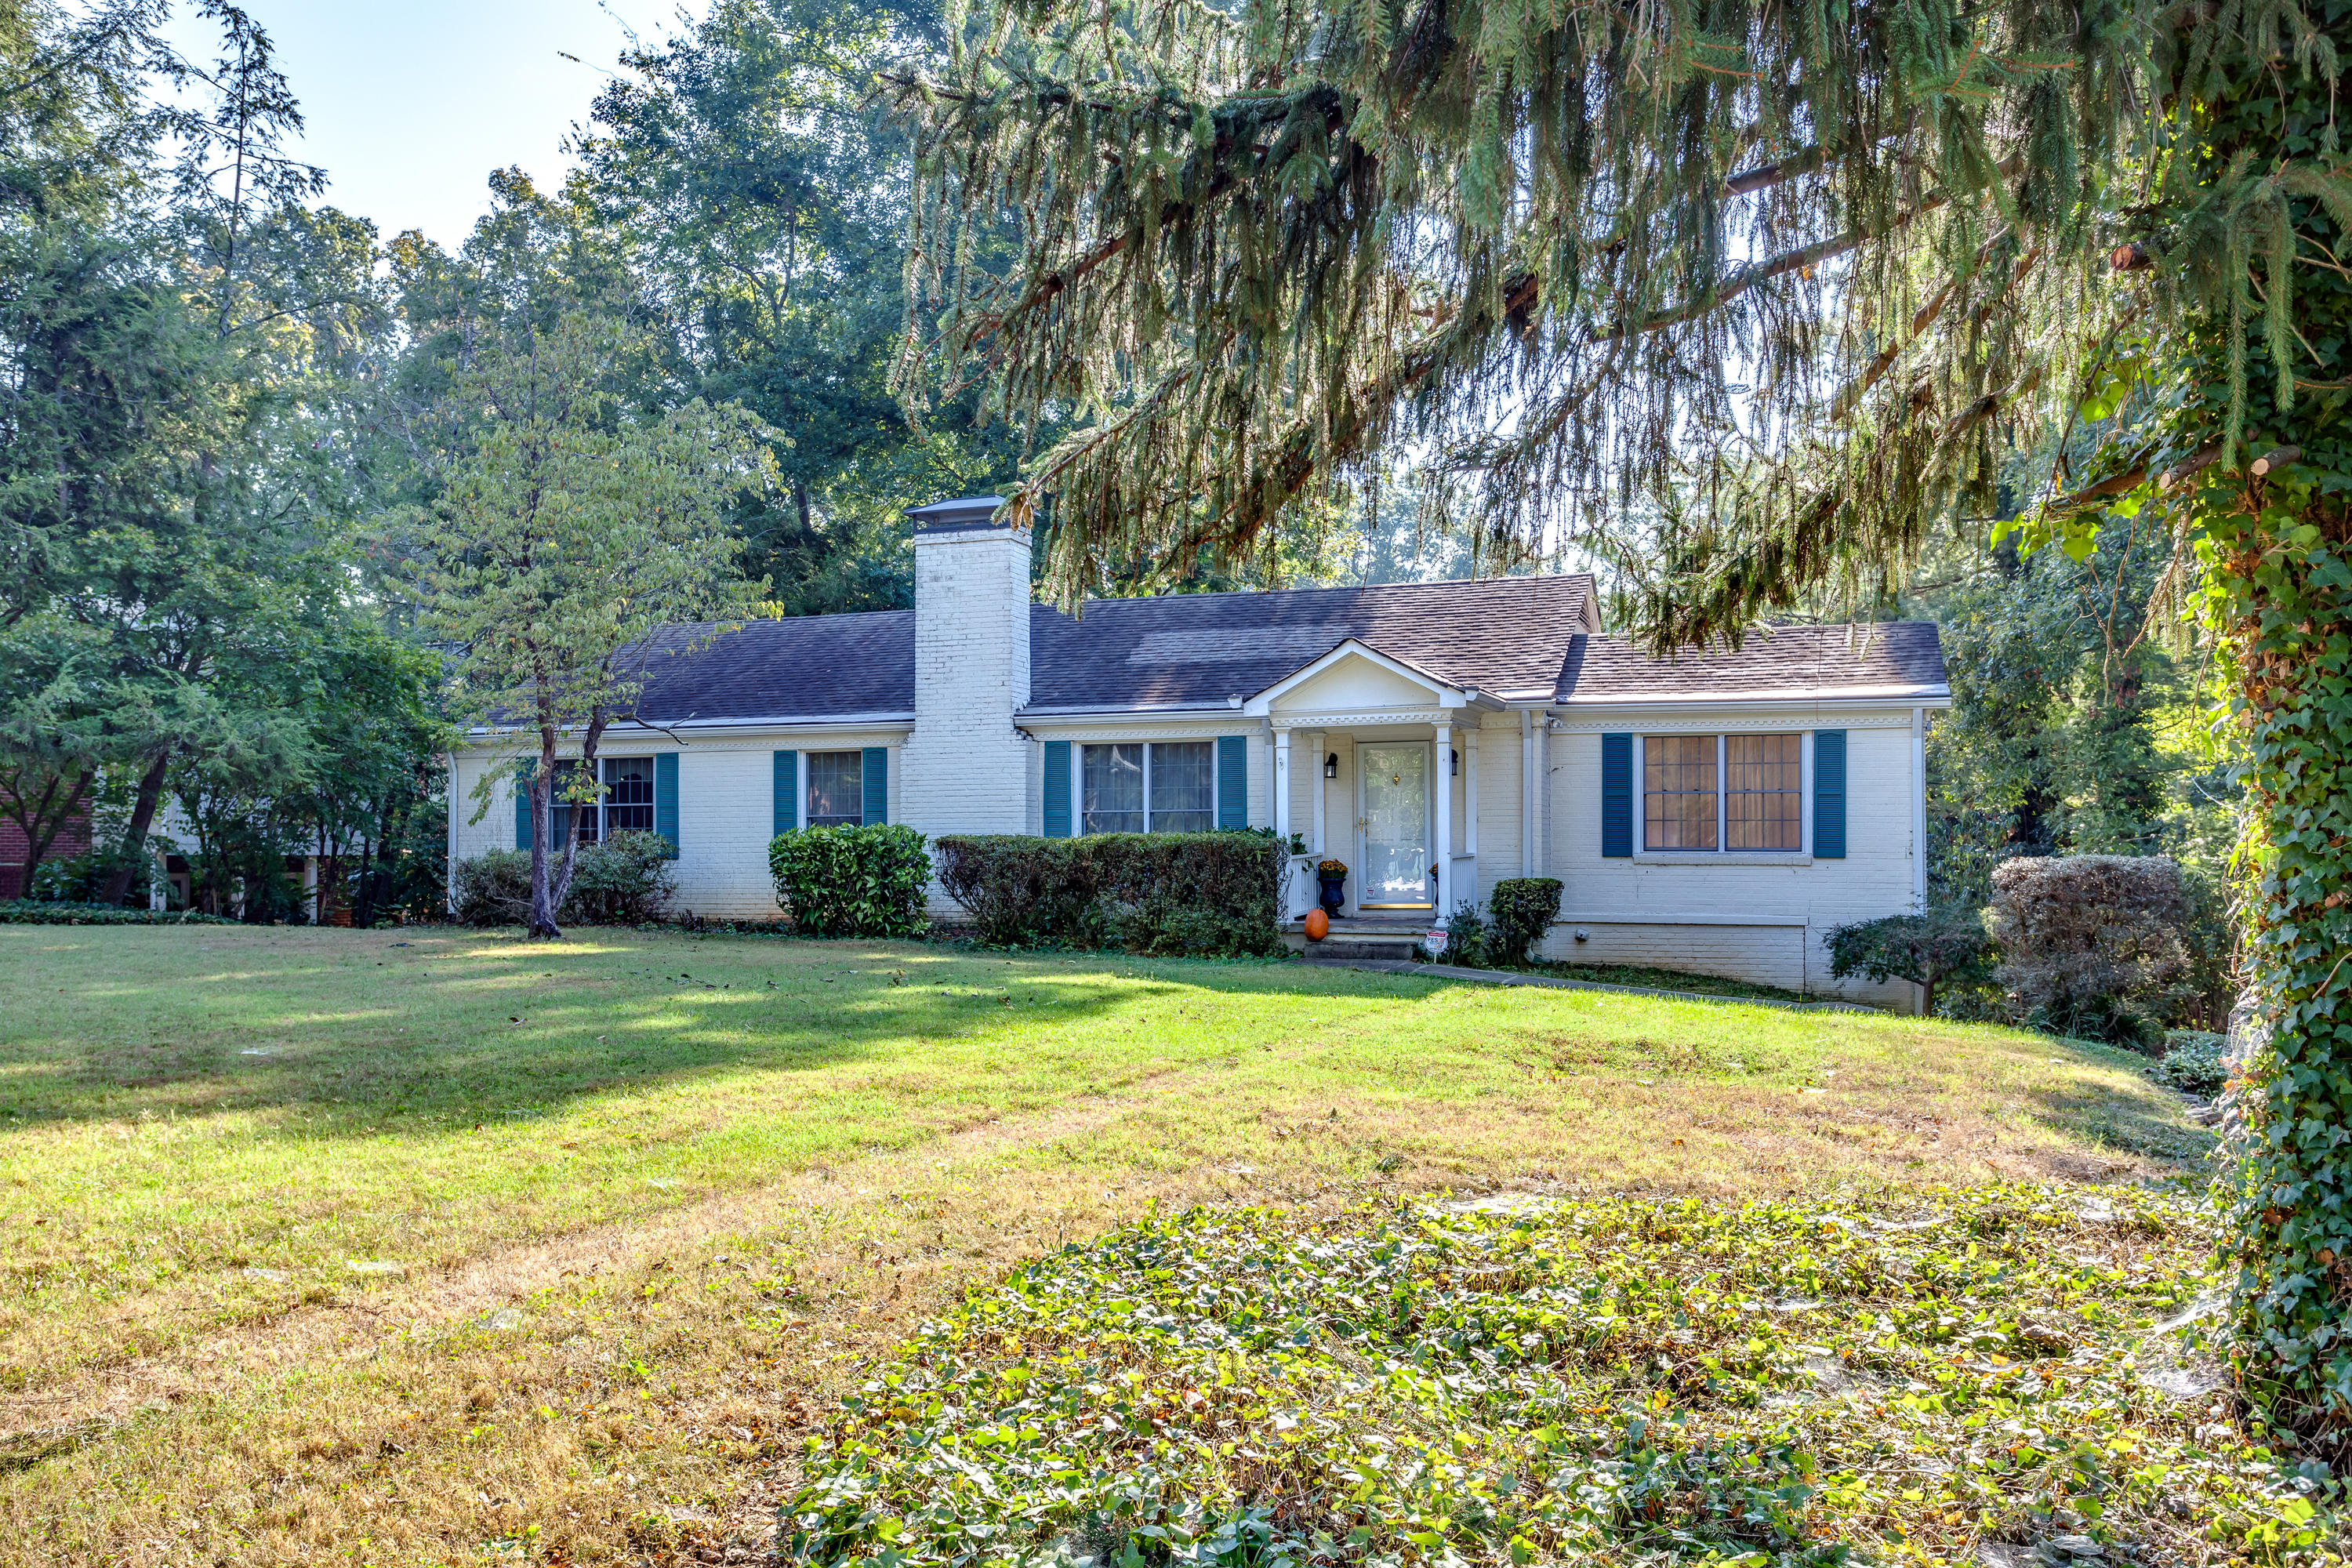 1144 Keowee Ave, Knoxville, Tennessee 37919, 5 Bedrooms Bedrooms, ,4 BathroomsBathrooms,Single Family,For Sale,Keowee,1096689